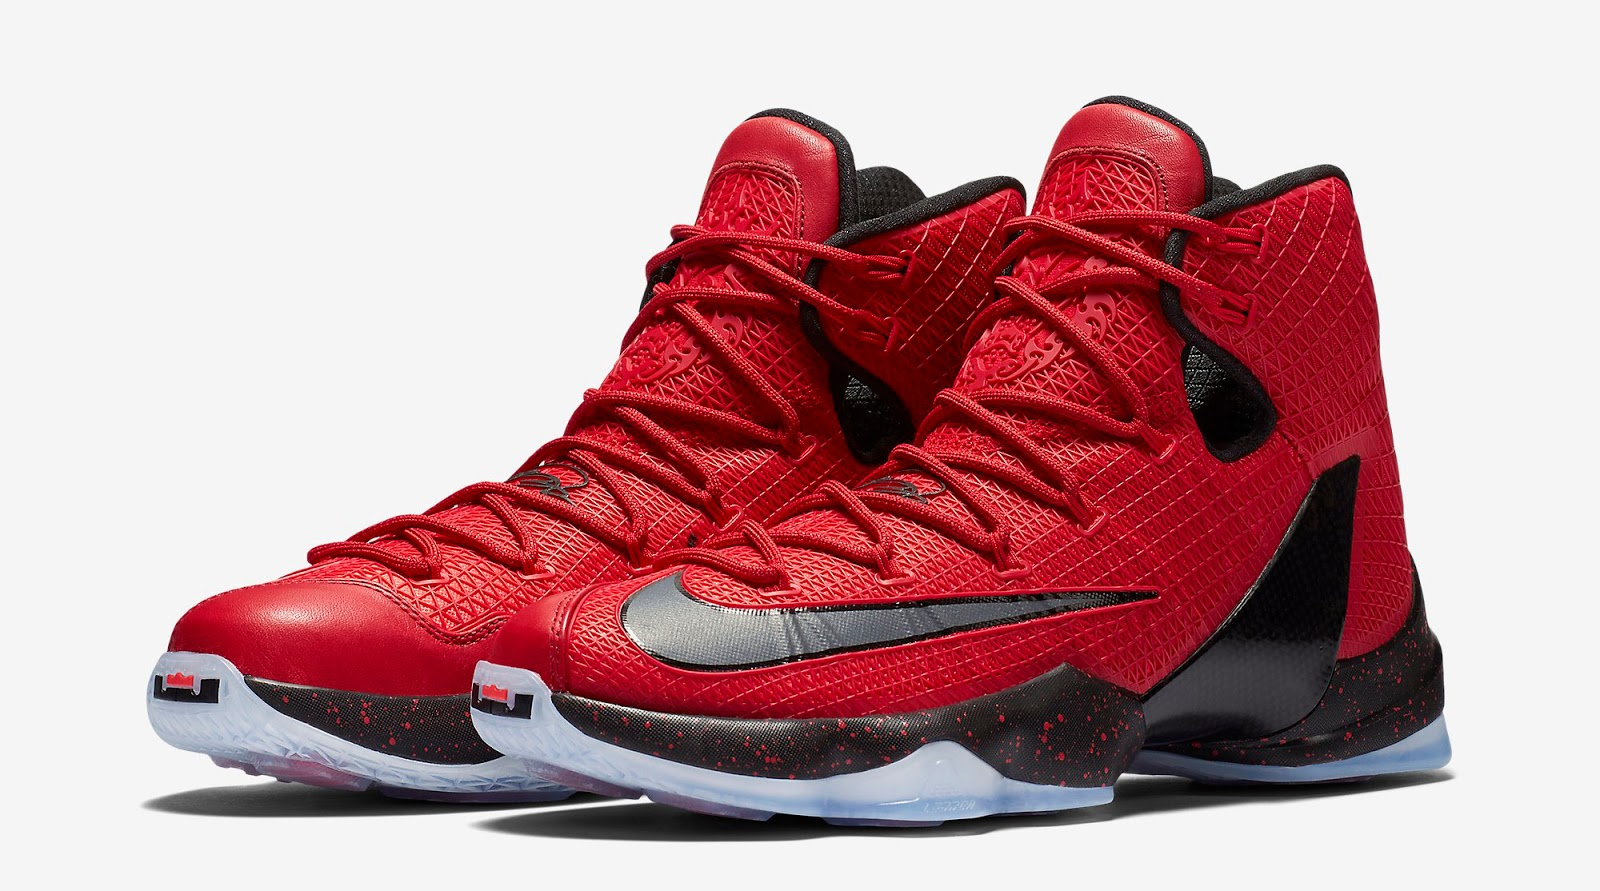 a4171ce8e77102 ajordanxi Your  1 Source For Sneaker Release Dates  Nike LeBron 13 Elite  University Red Bright Crimson-Black Release Reminder